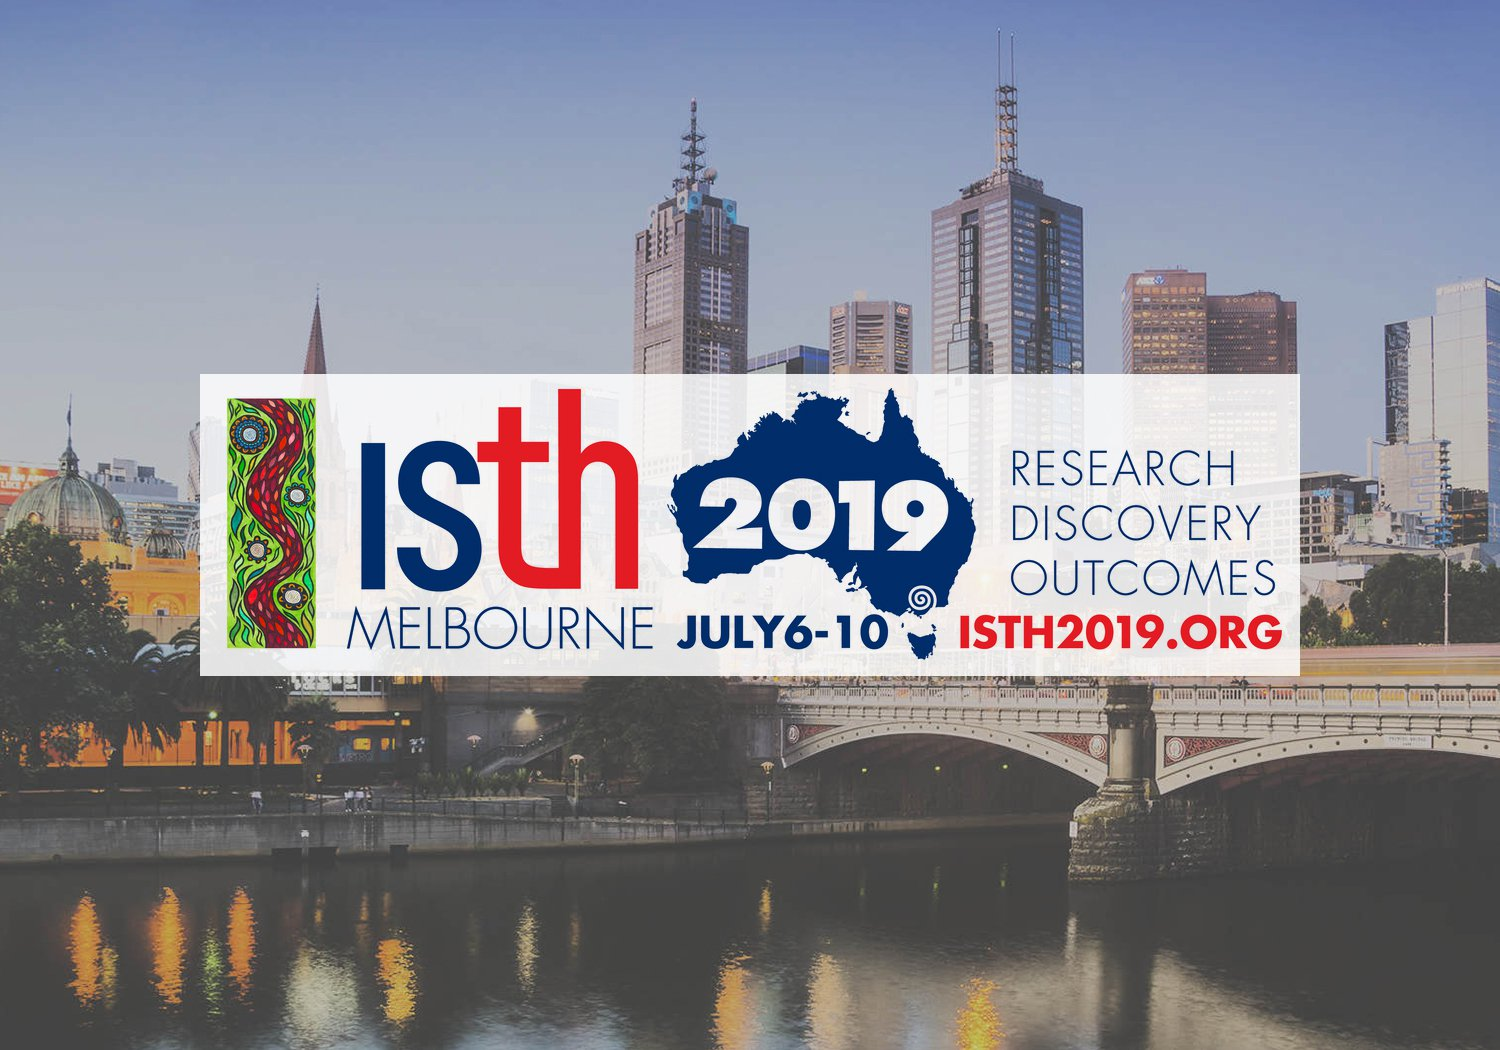 XXVII CONGRESS OF THE INTERNATIONAL SOCIETY ON THROMBOSIS AND HAEMOSTASIS (ISTH) I 6-10th July, Melbourne, Australia